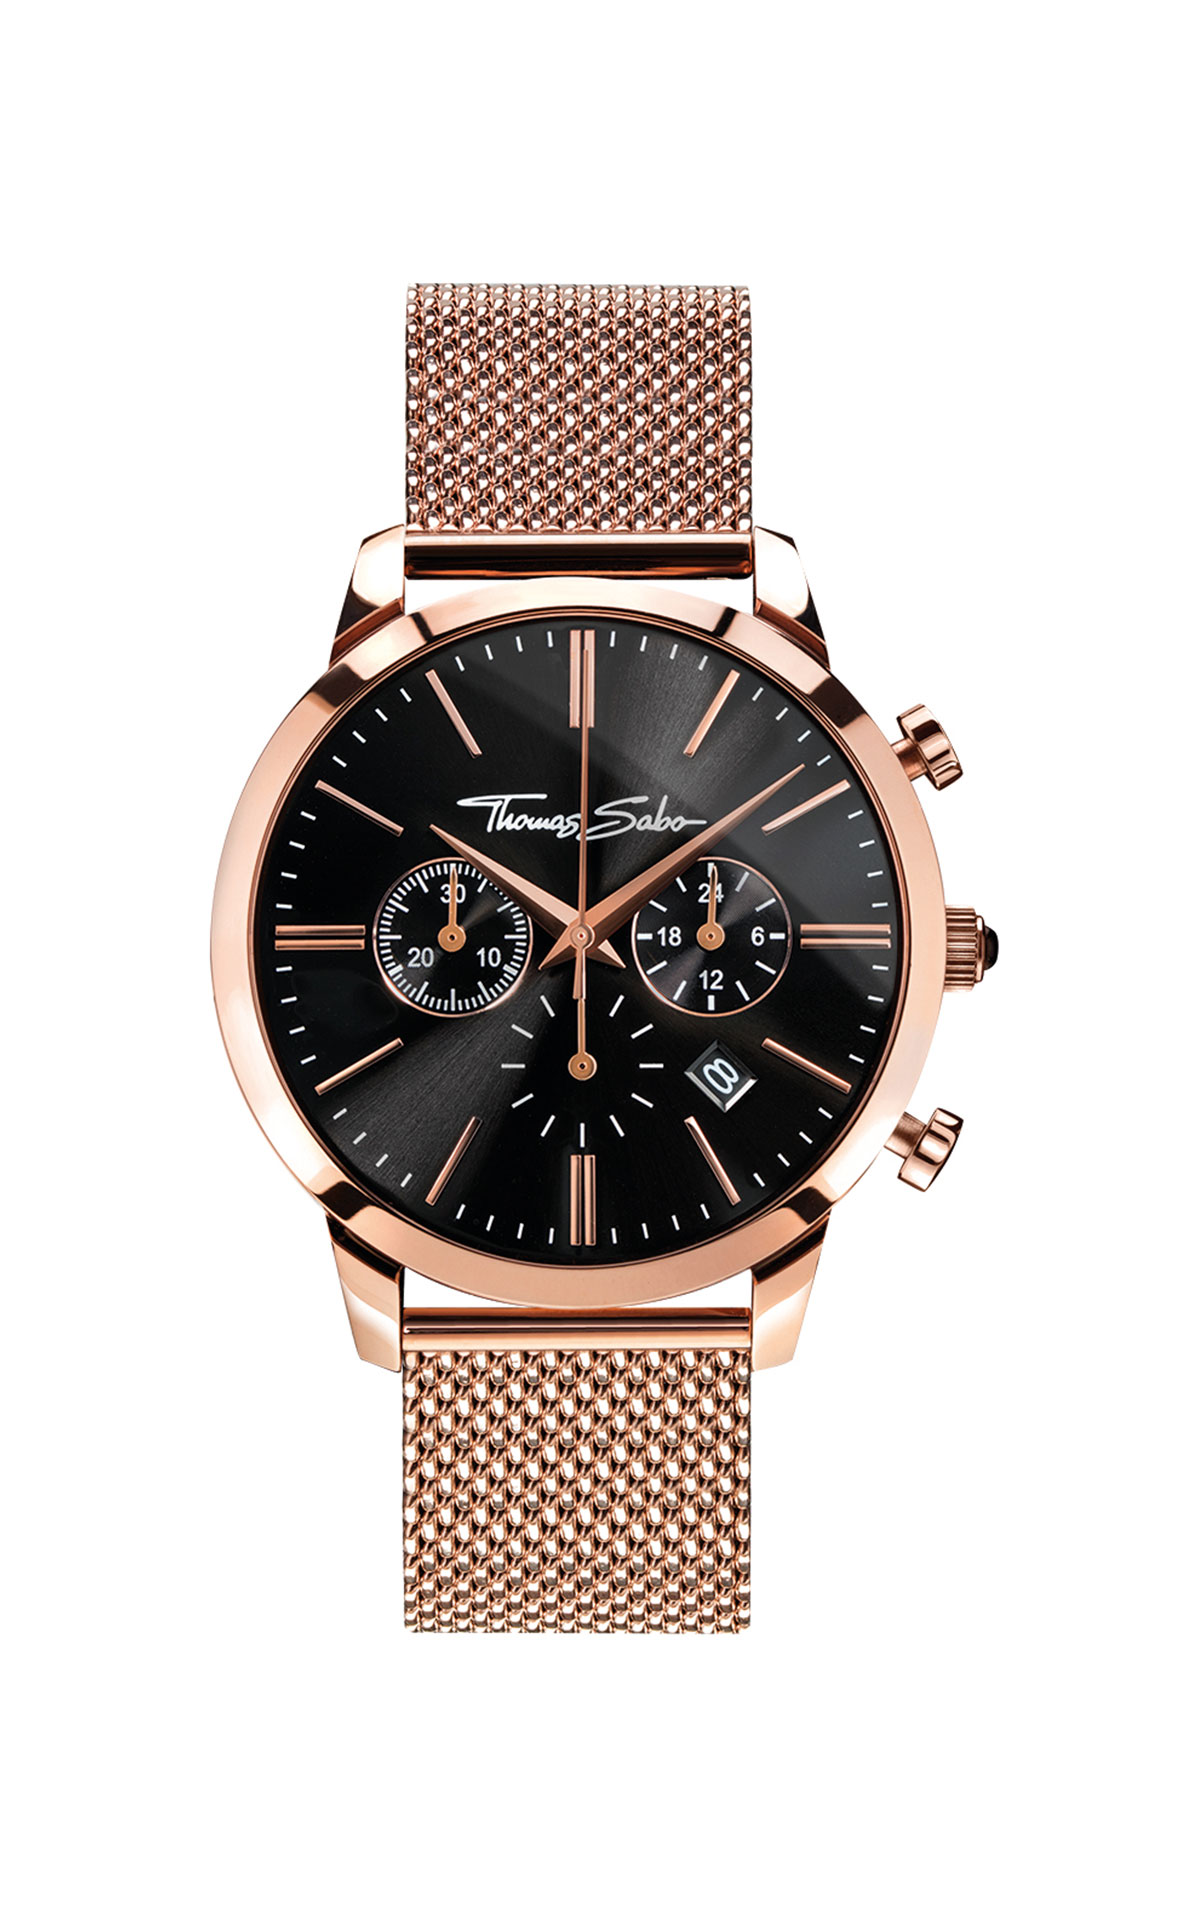 Rose gold watch with black dial Thomas Sabo